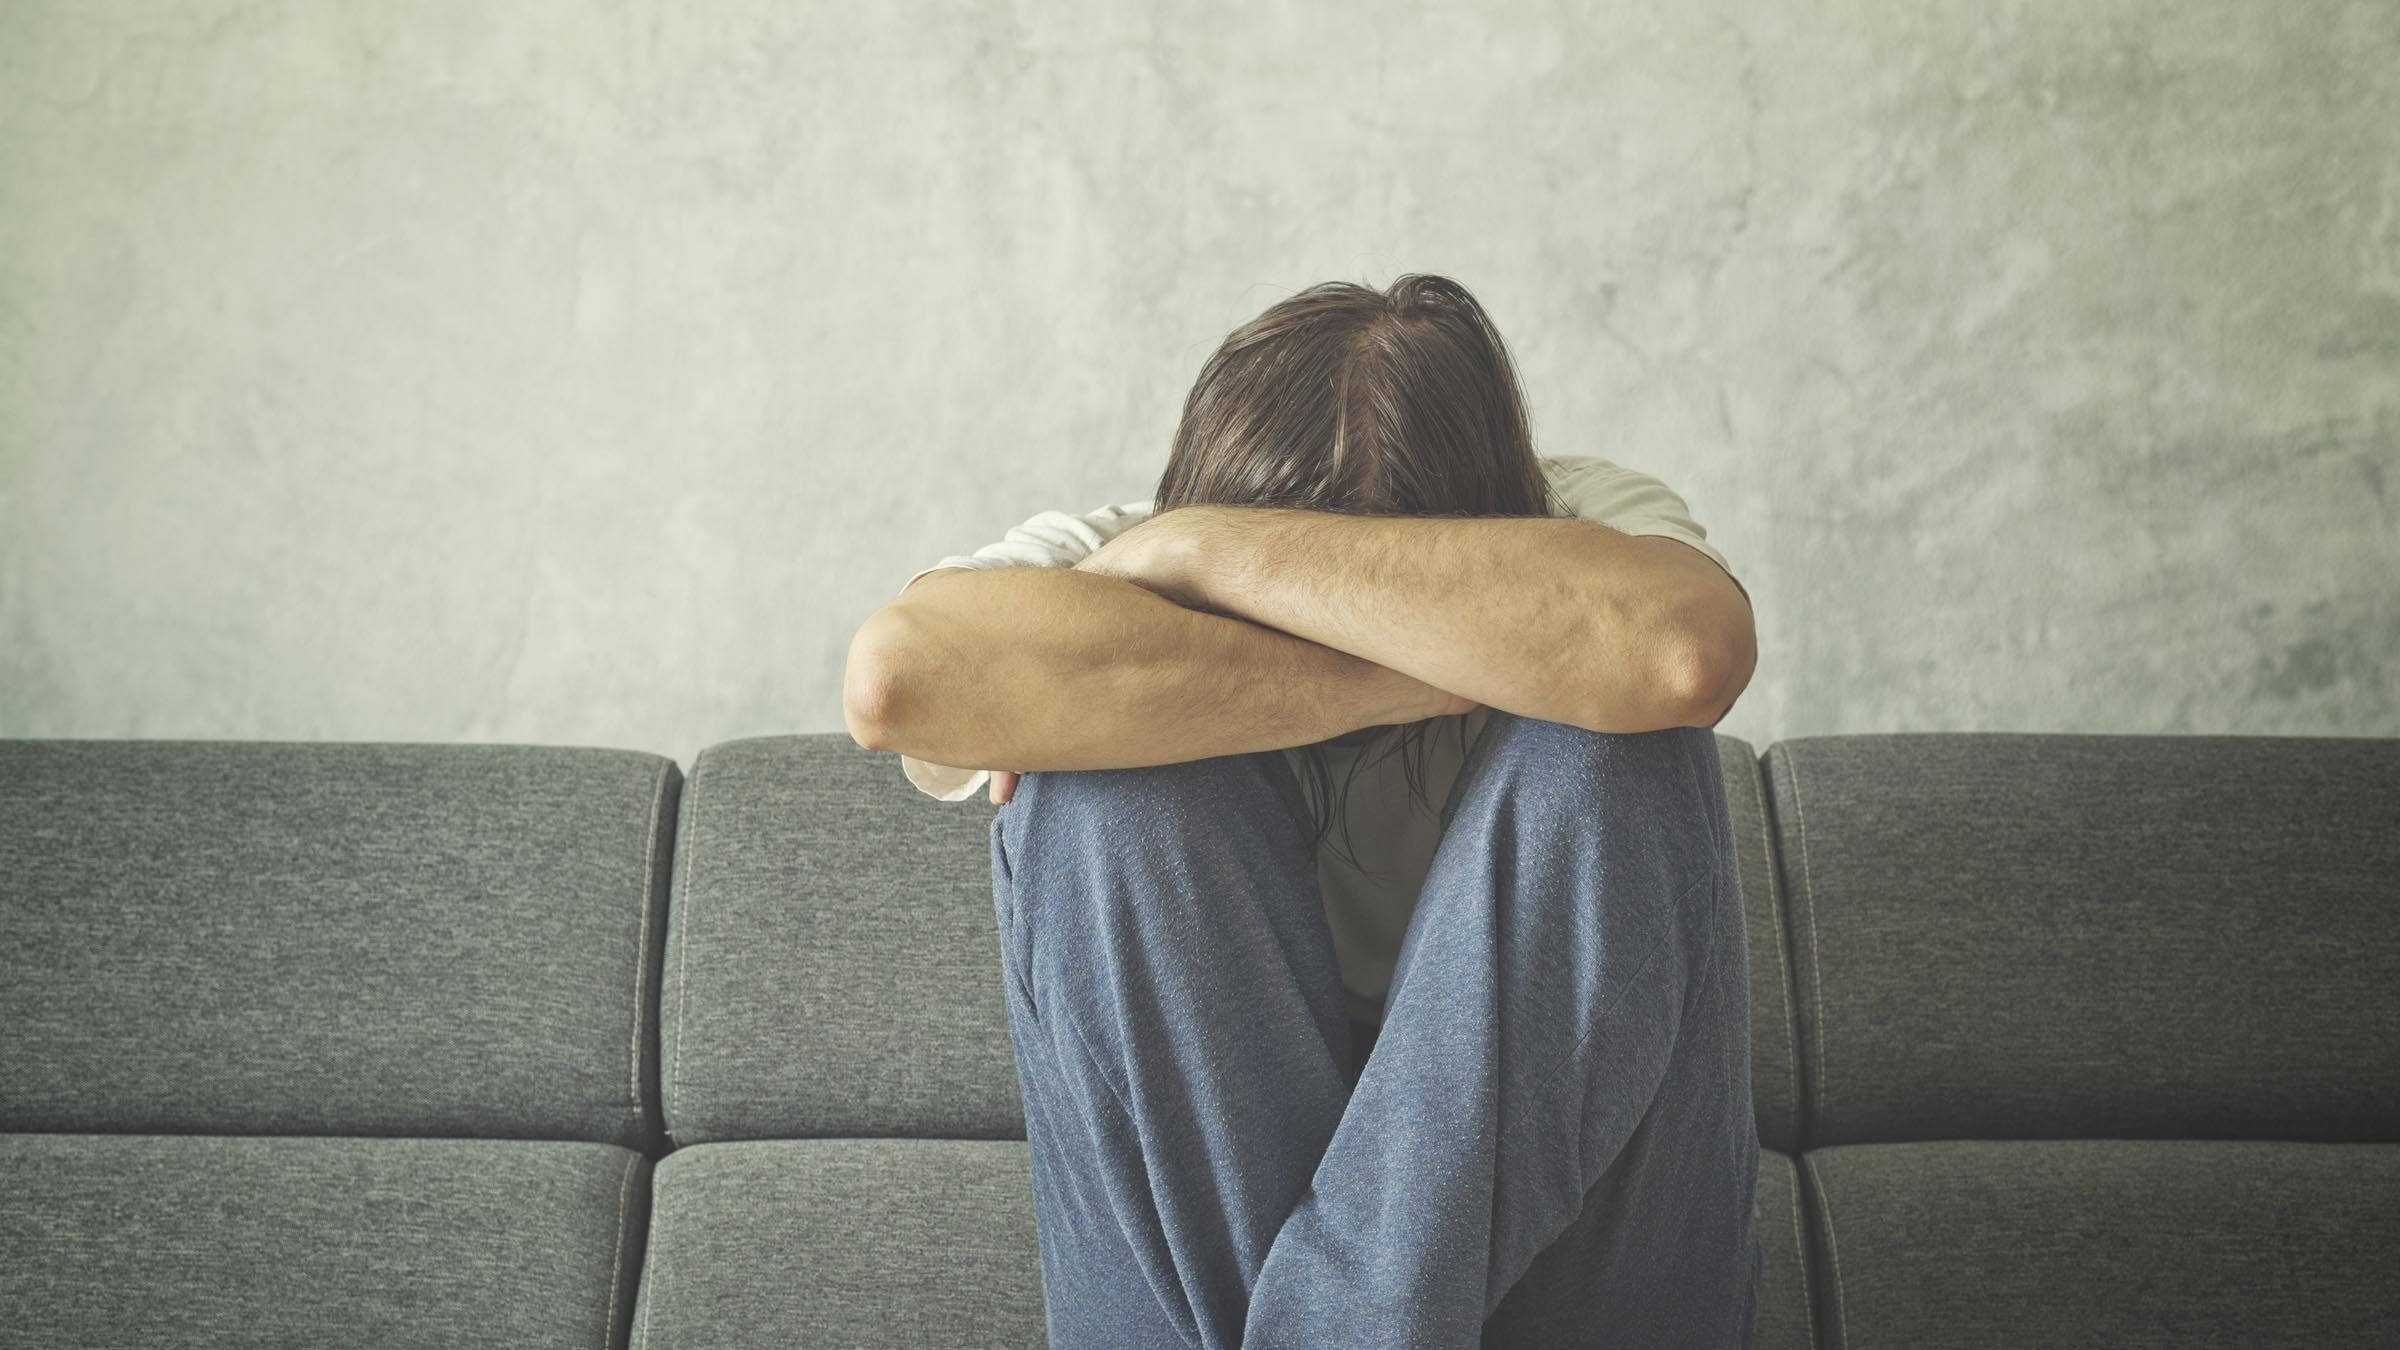 Man on couch with head in arms